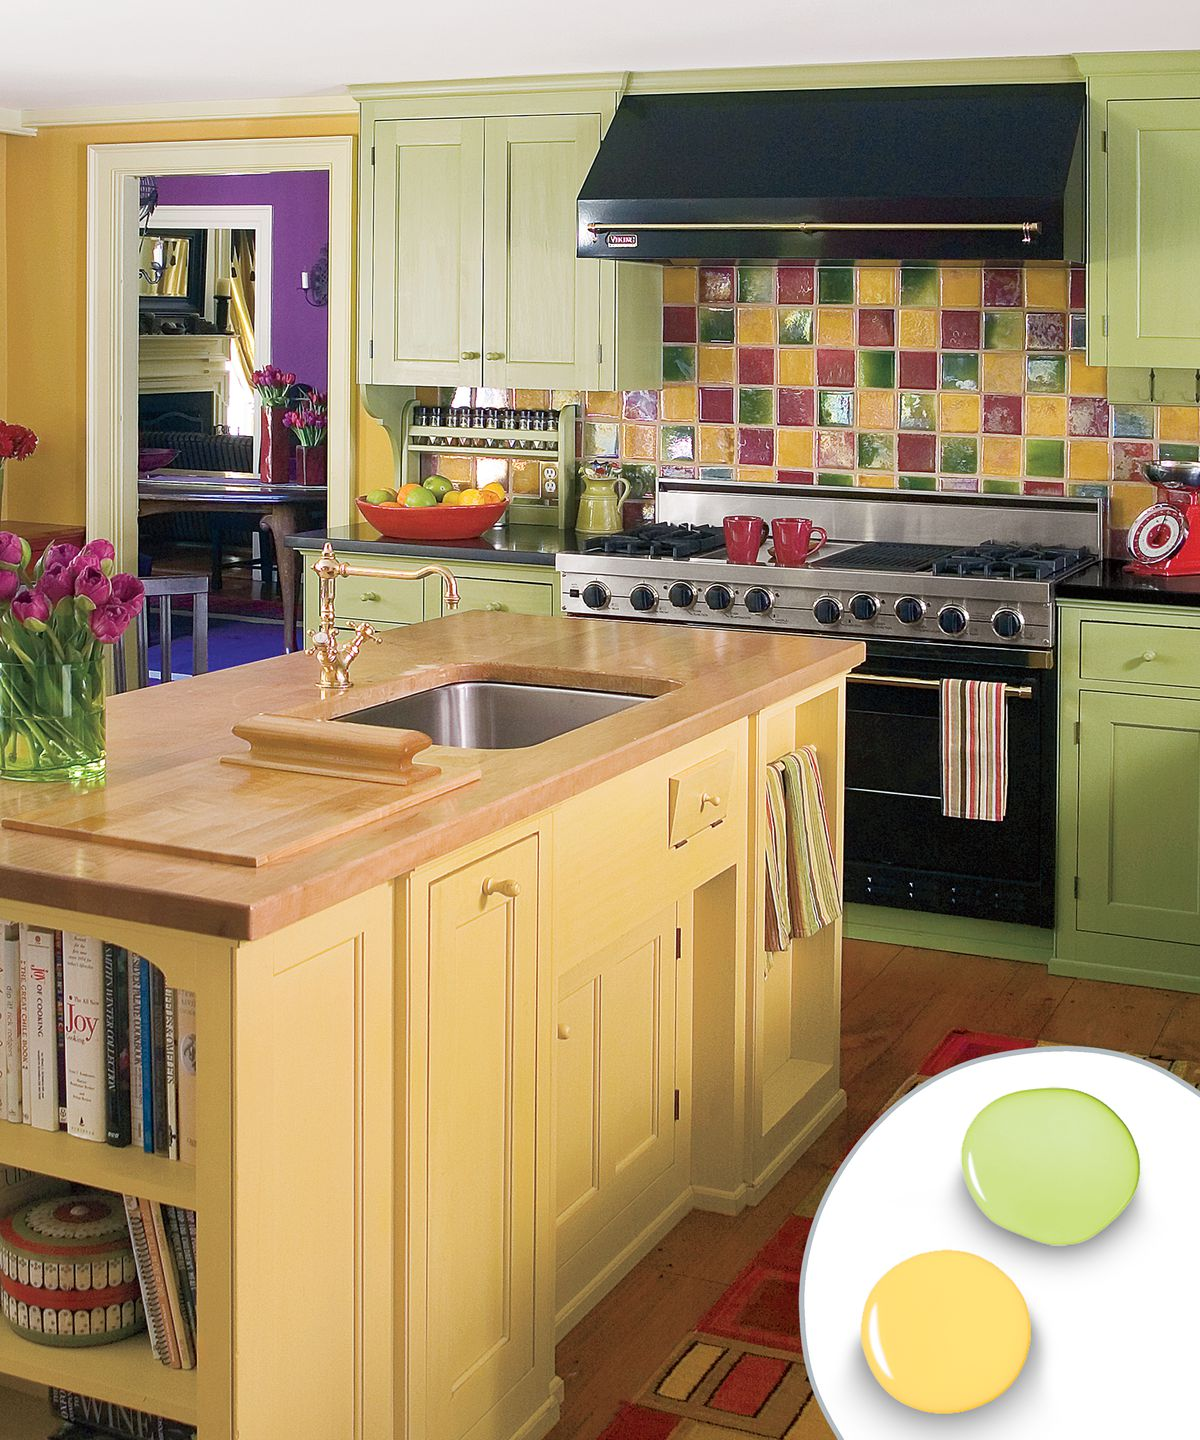 Multicolor kitchen color scheme with light yellow kitchen island and green cupboards.